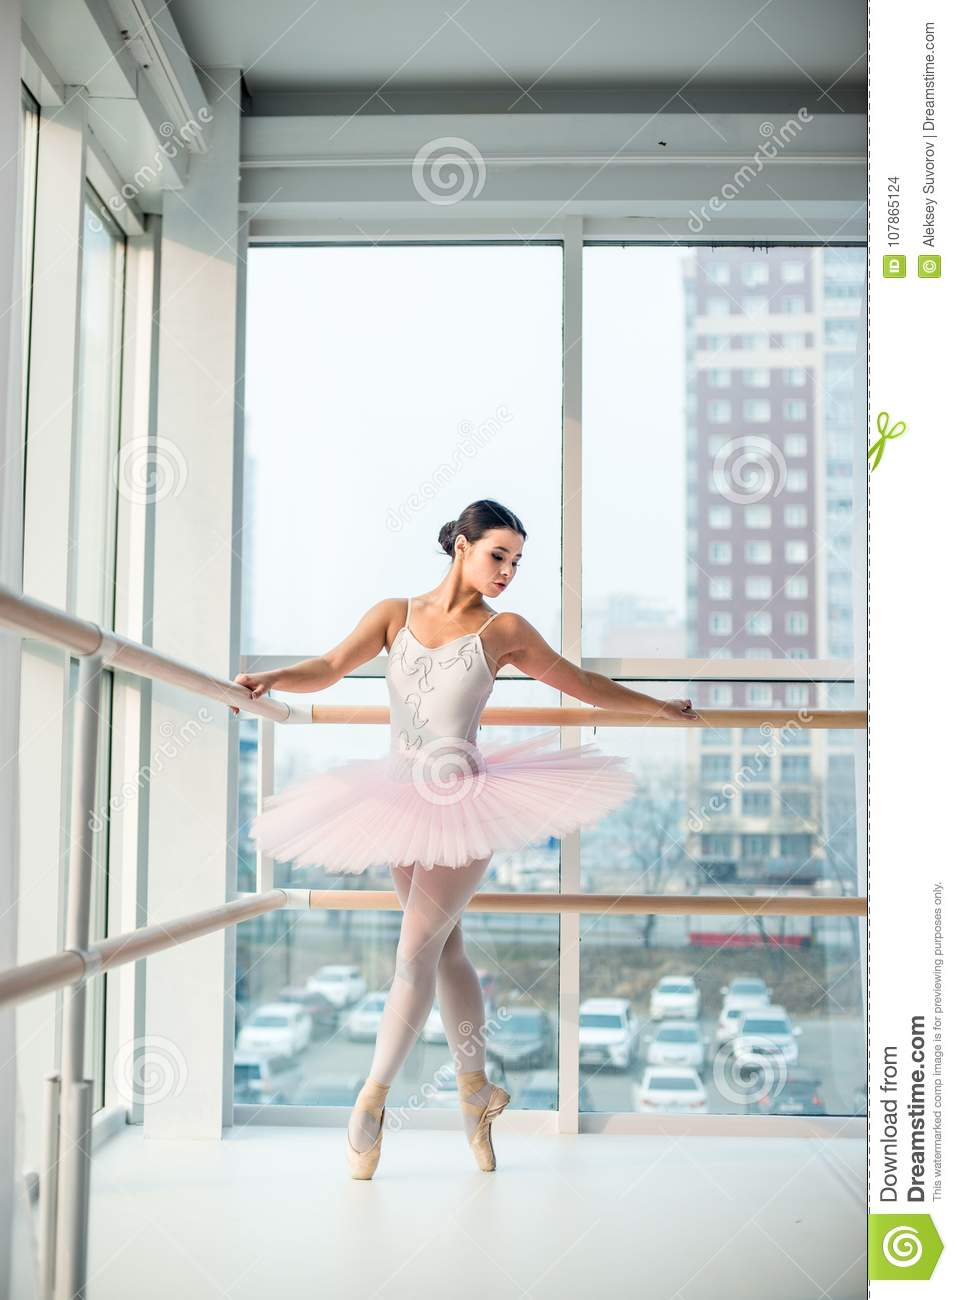 Young And Incredibly Beautiful Ballerina Is Posing And Dancing In A White Studio Full Of Light Stock Photo Image Of Body Jump 107865124